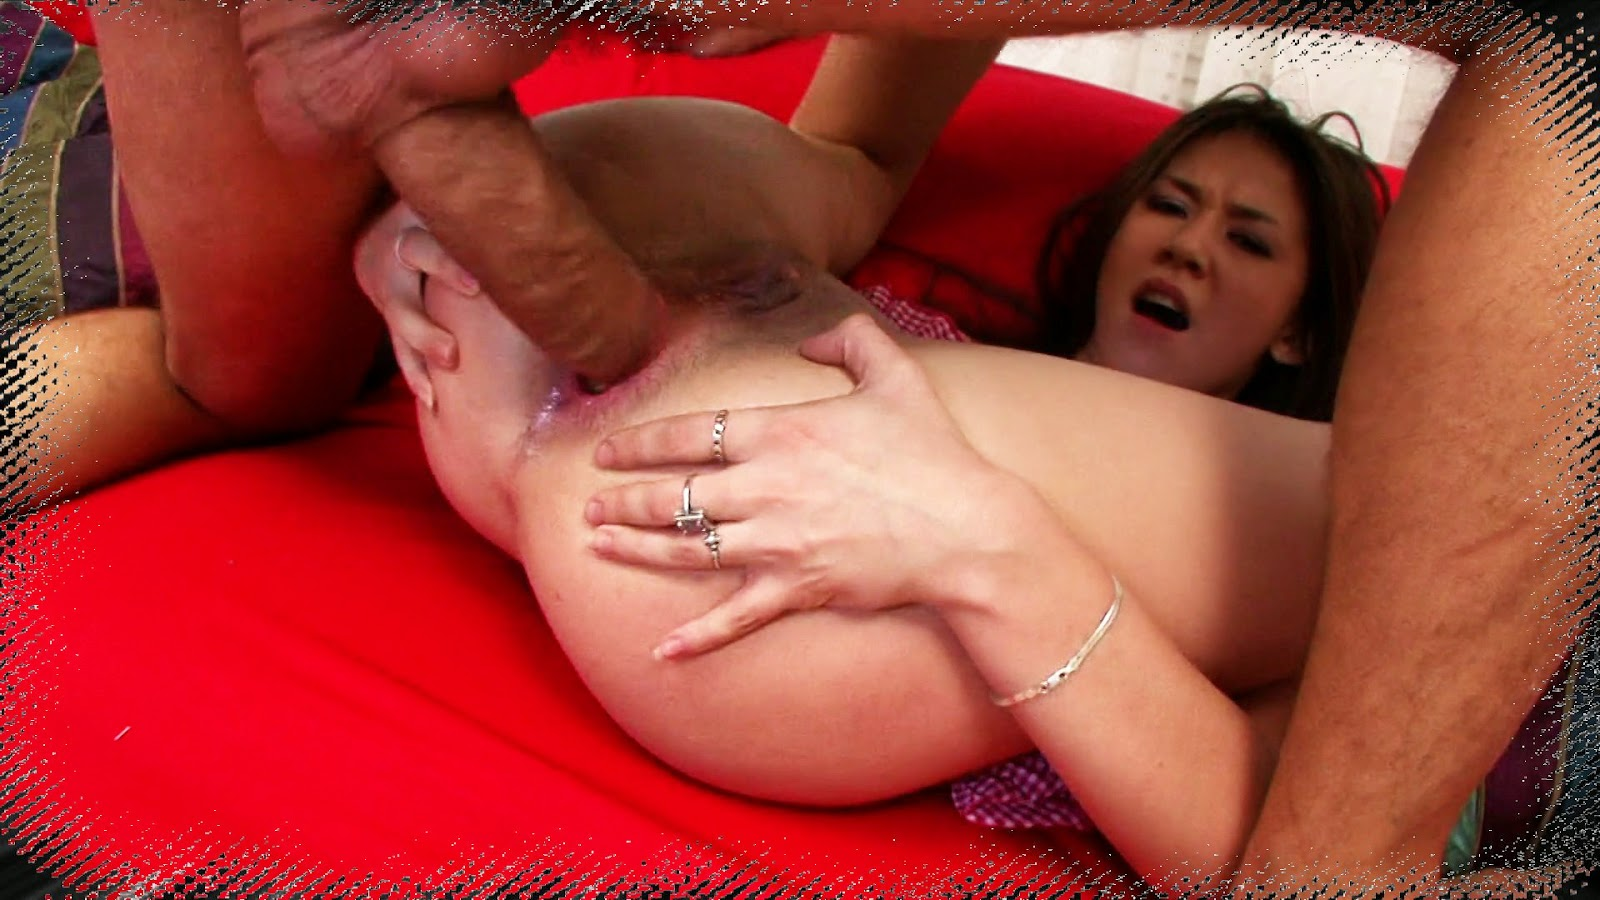 Asenalx anal and gape session ii music video 6